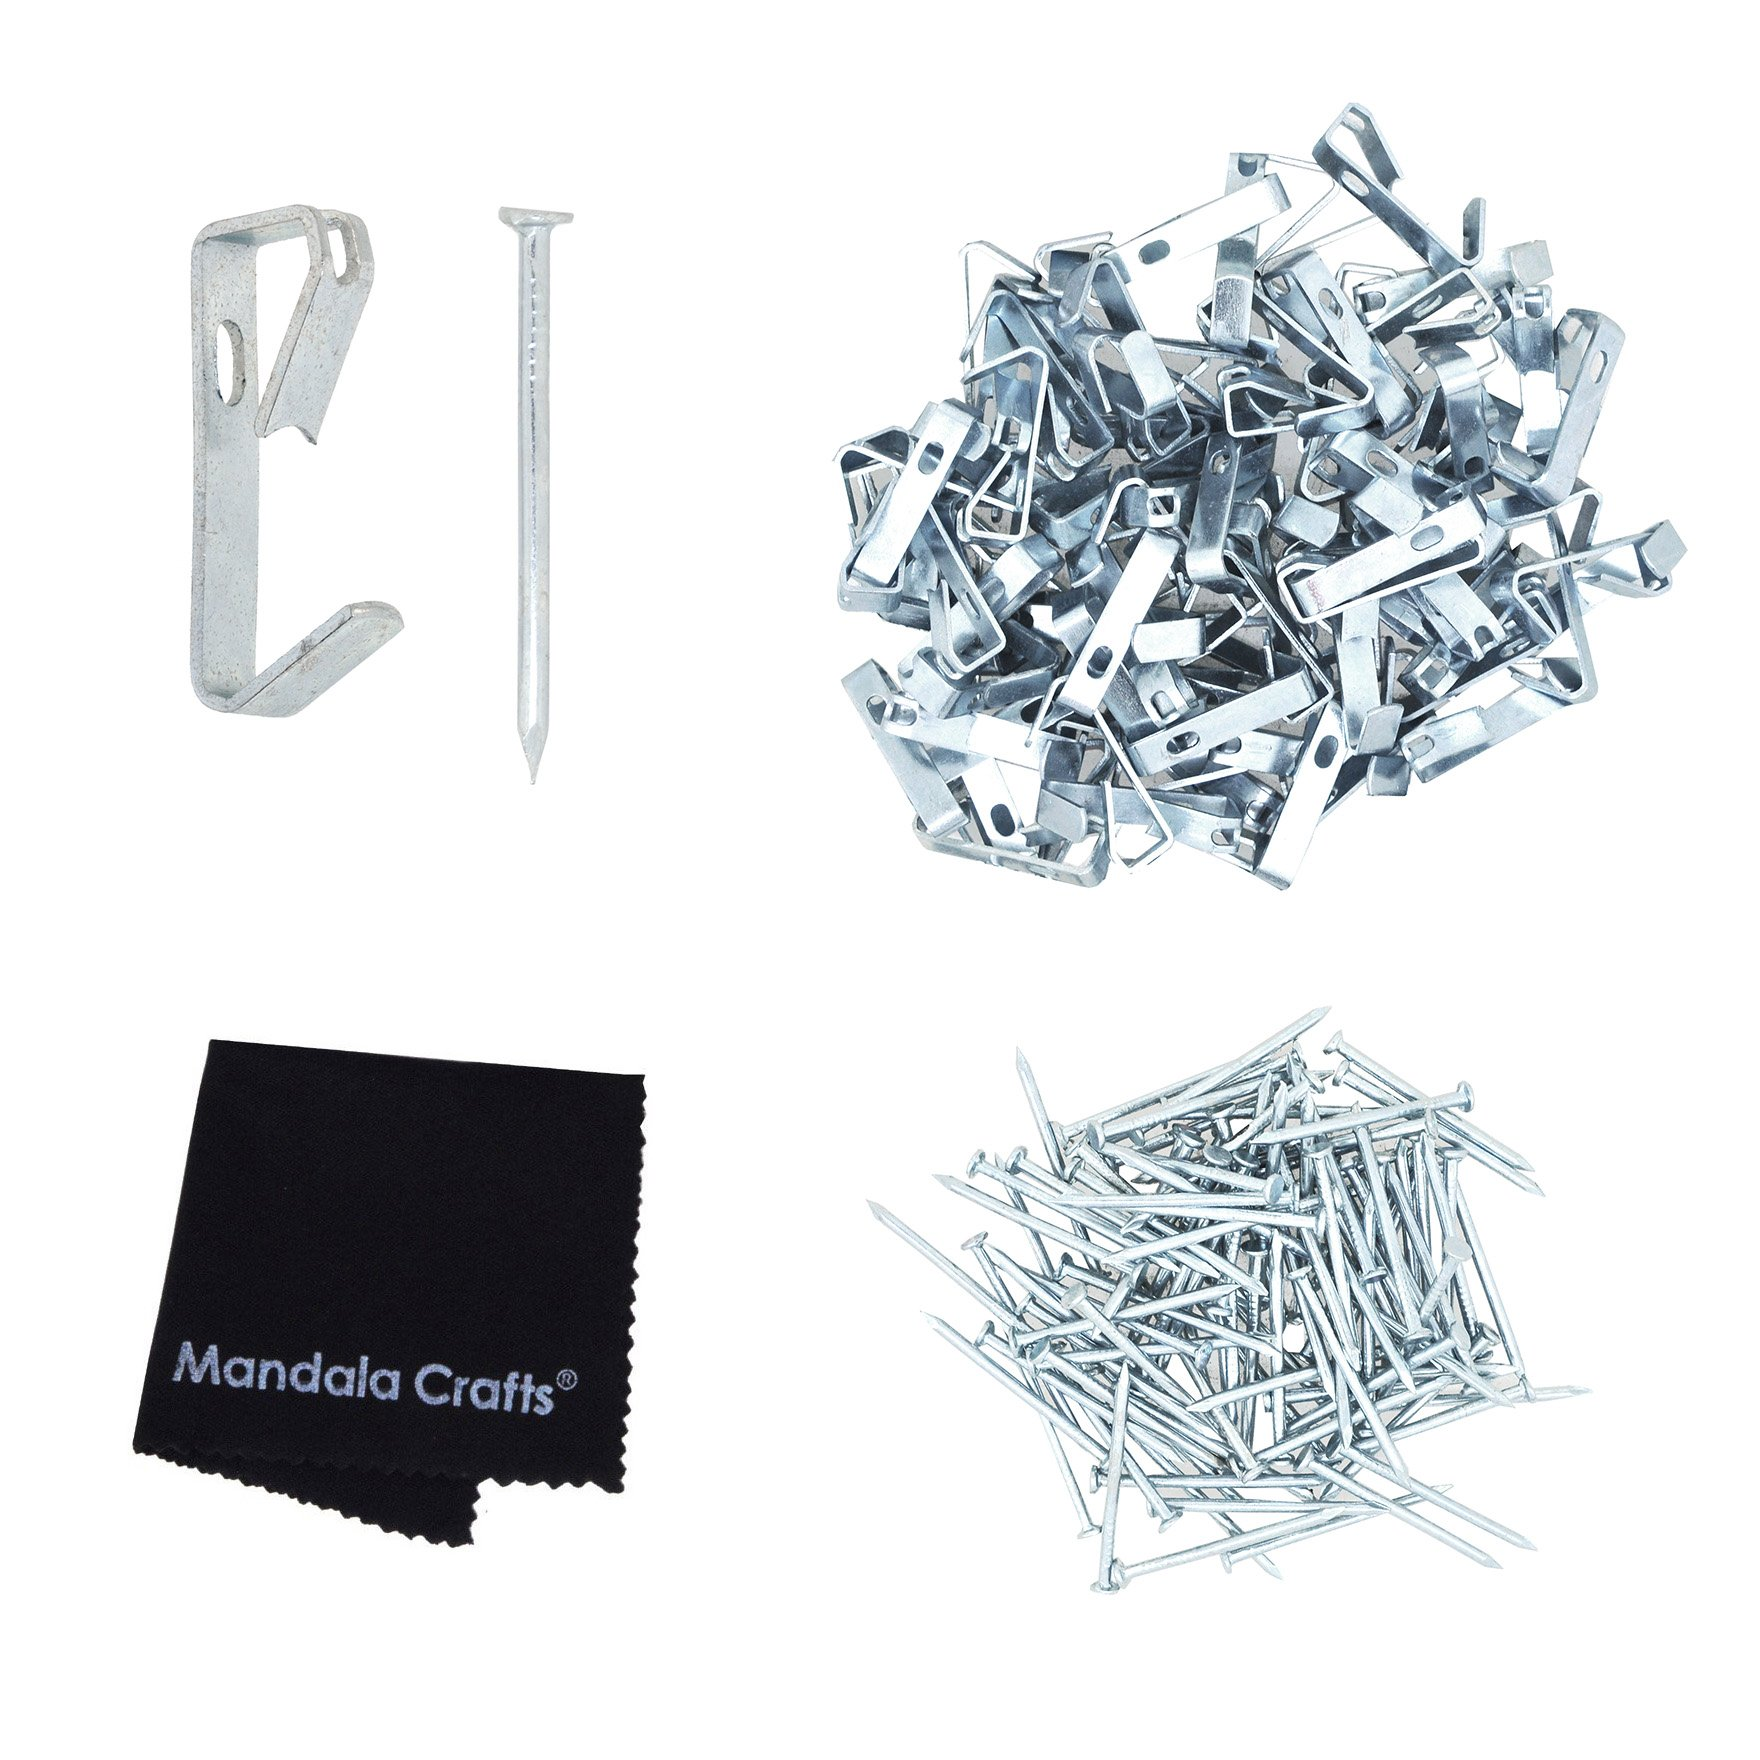 Mandala Crafts Heavy Duty 20 30 50 100 lbs Picture Hooks Hangers with Nails for Hanging on Wall (Small 100 PCs 20 pounds, Silver)